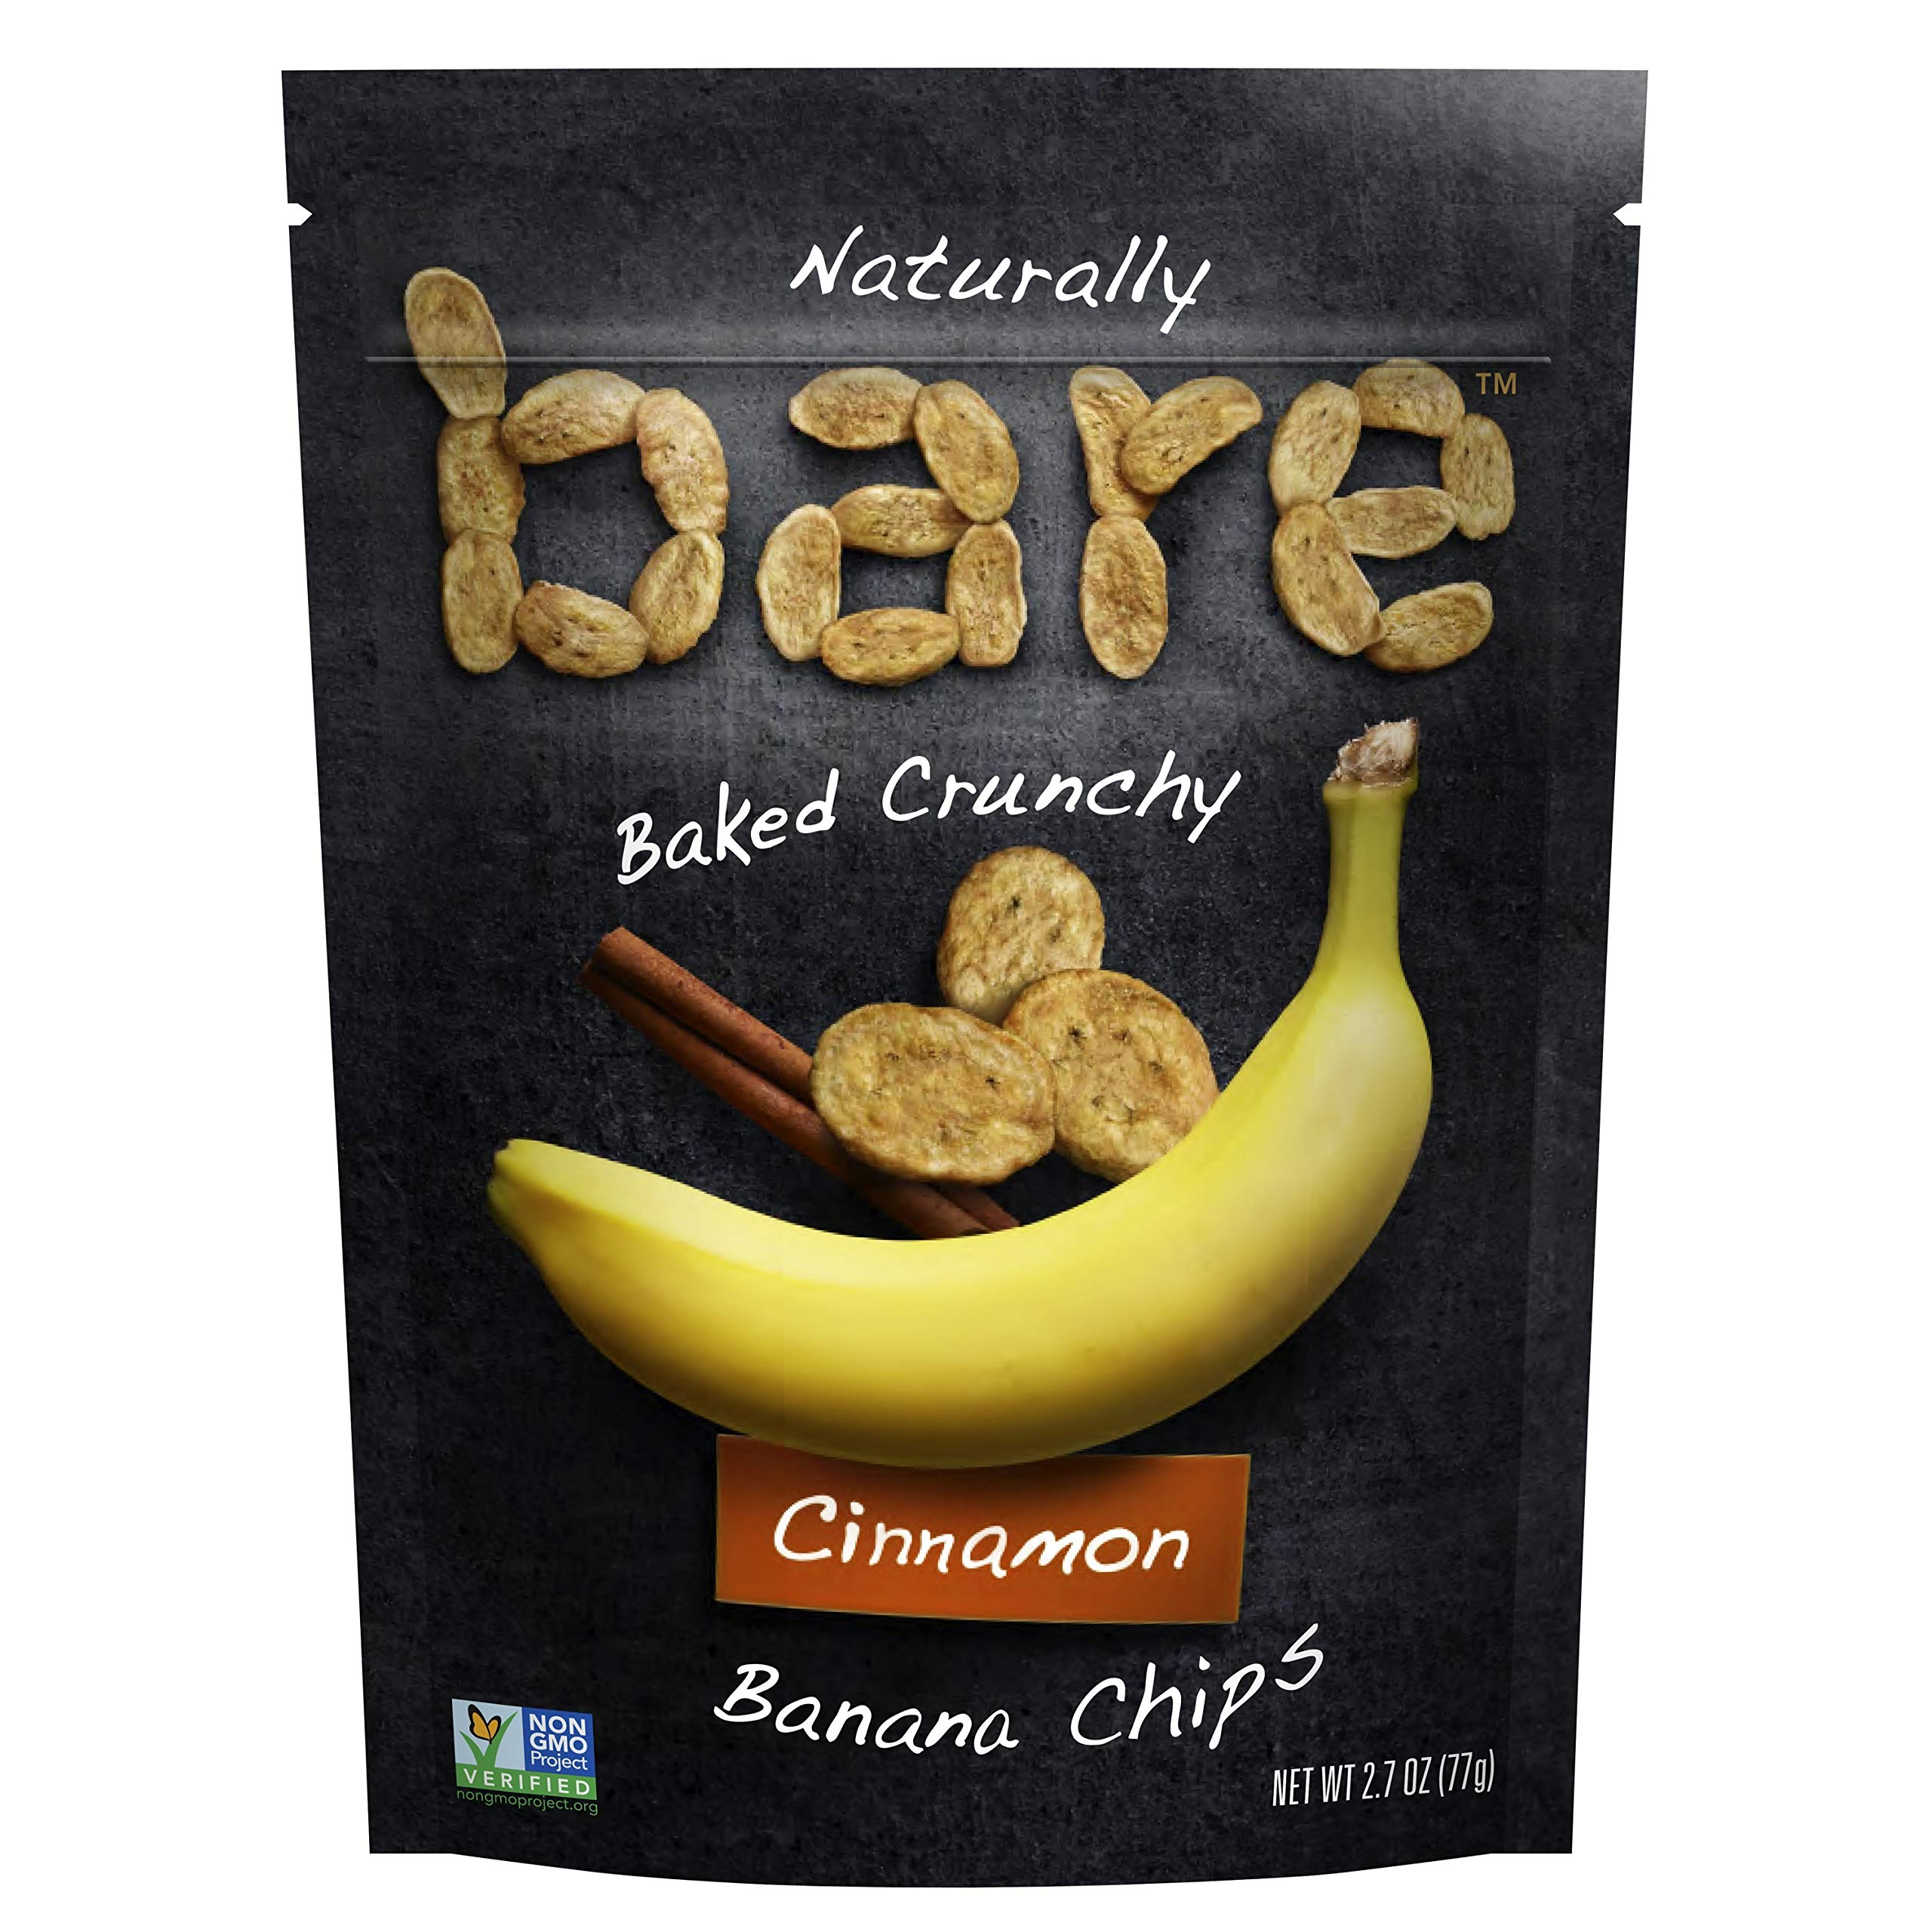 Bare Snacks Cinnamon Banana Chips, 2.7 oz